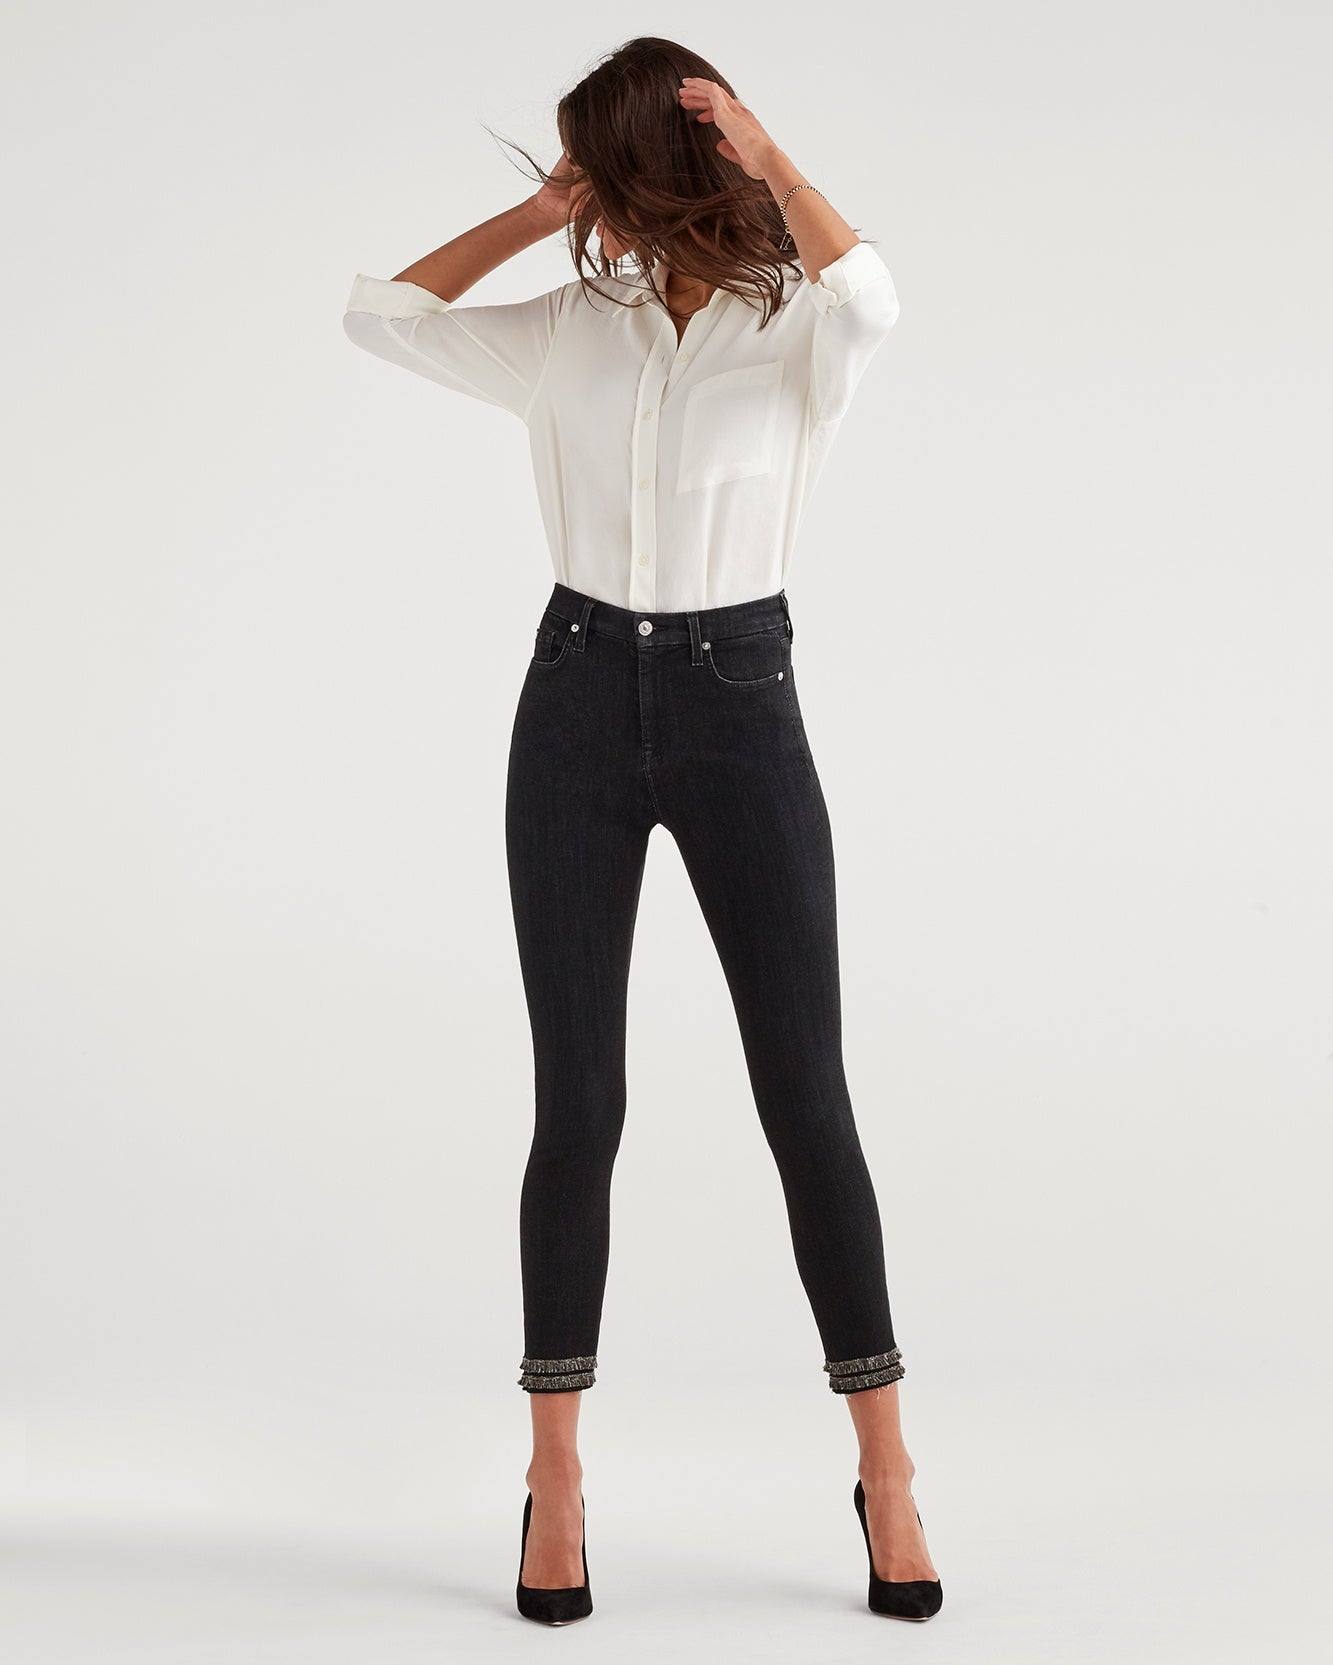 Image of High Waist Ankle Skinny with Fringe Hem in Washed Out Black